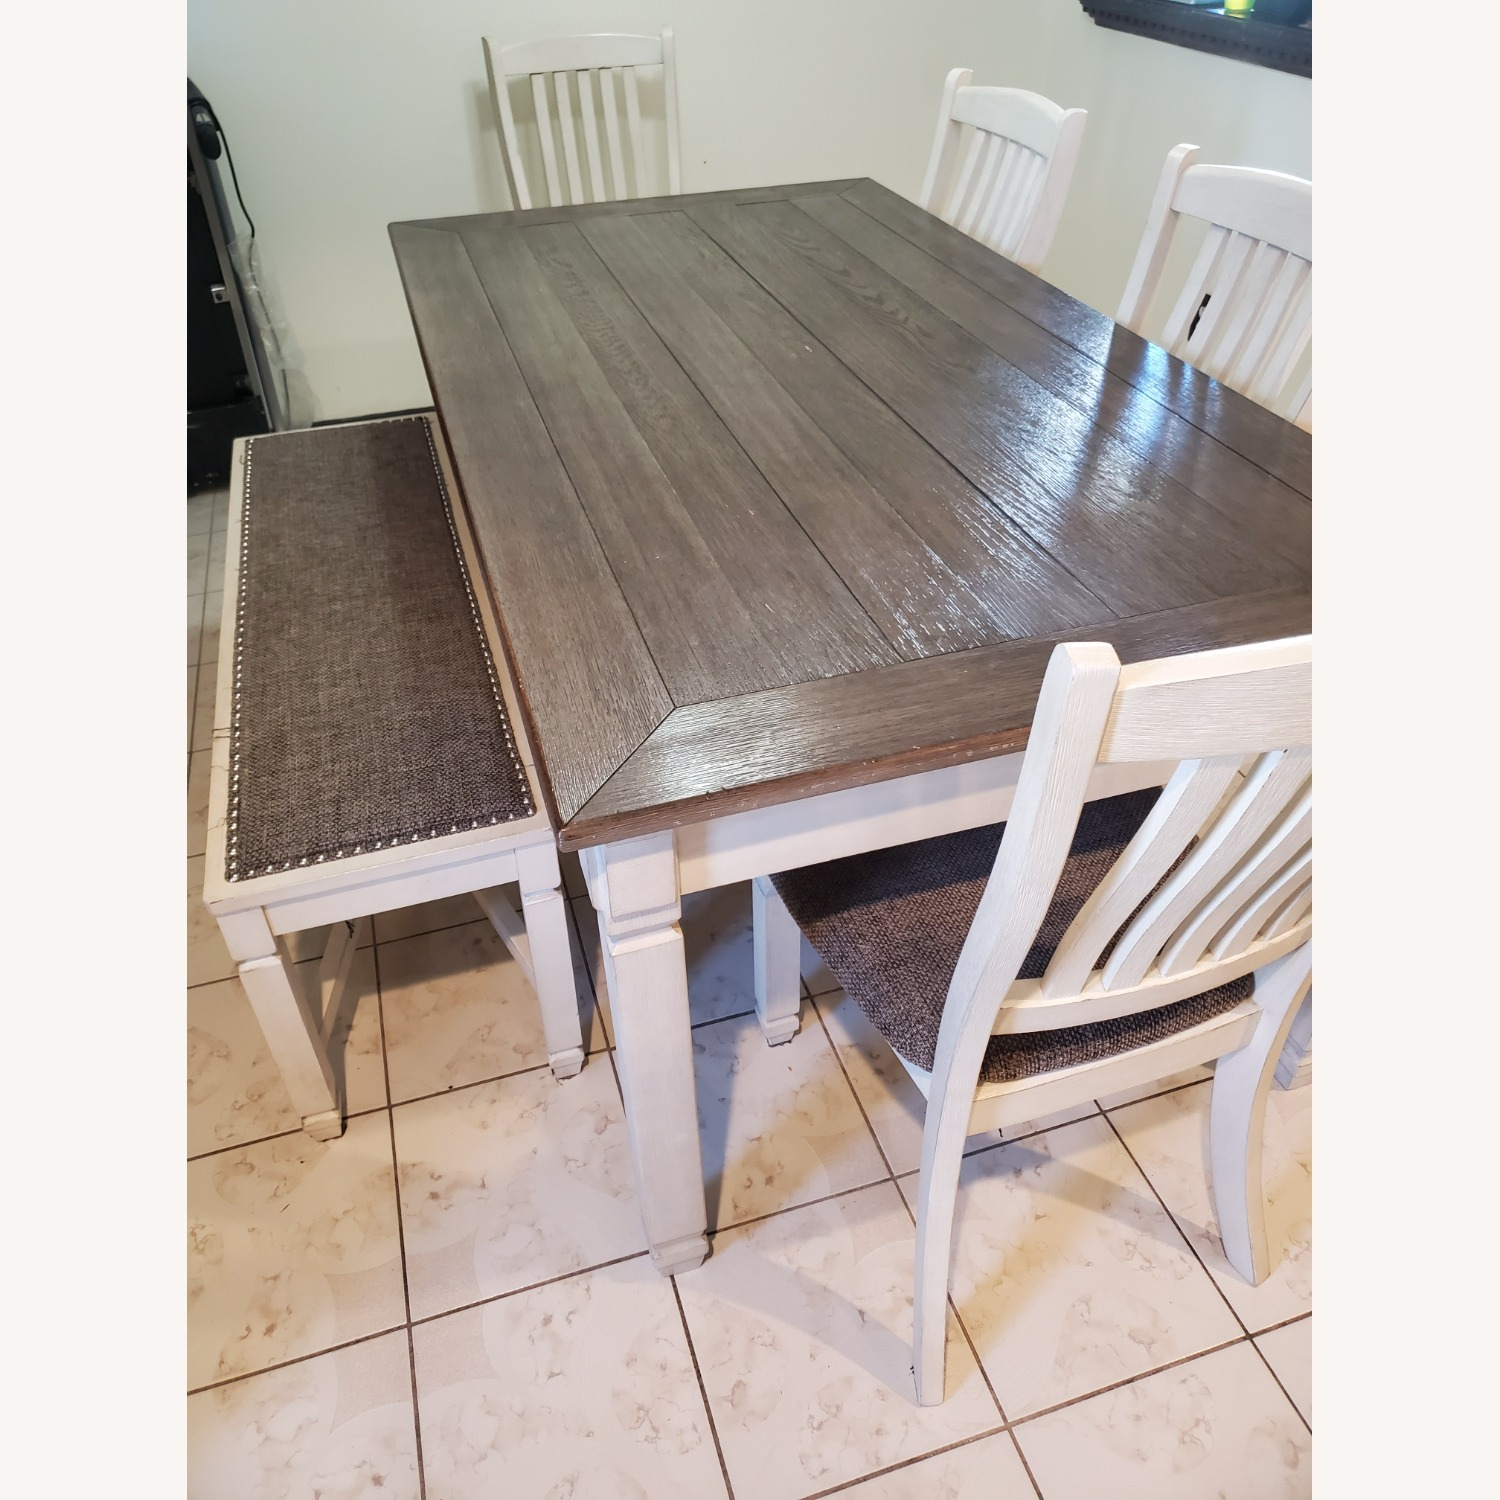 New Rustics Ashley Home Dining Table Seats 7 - image-3